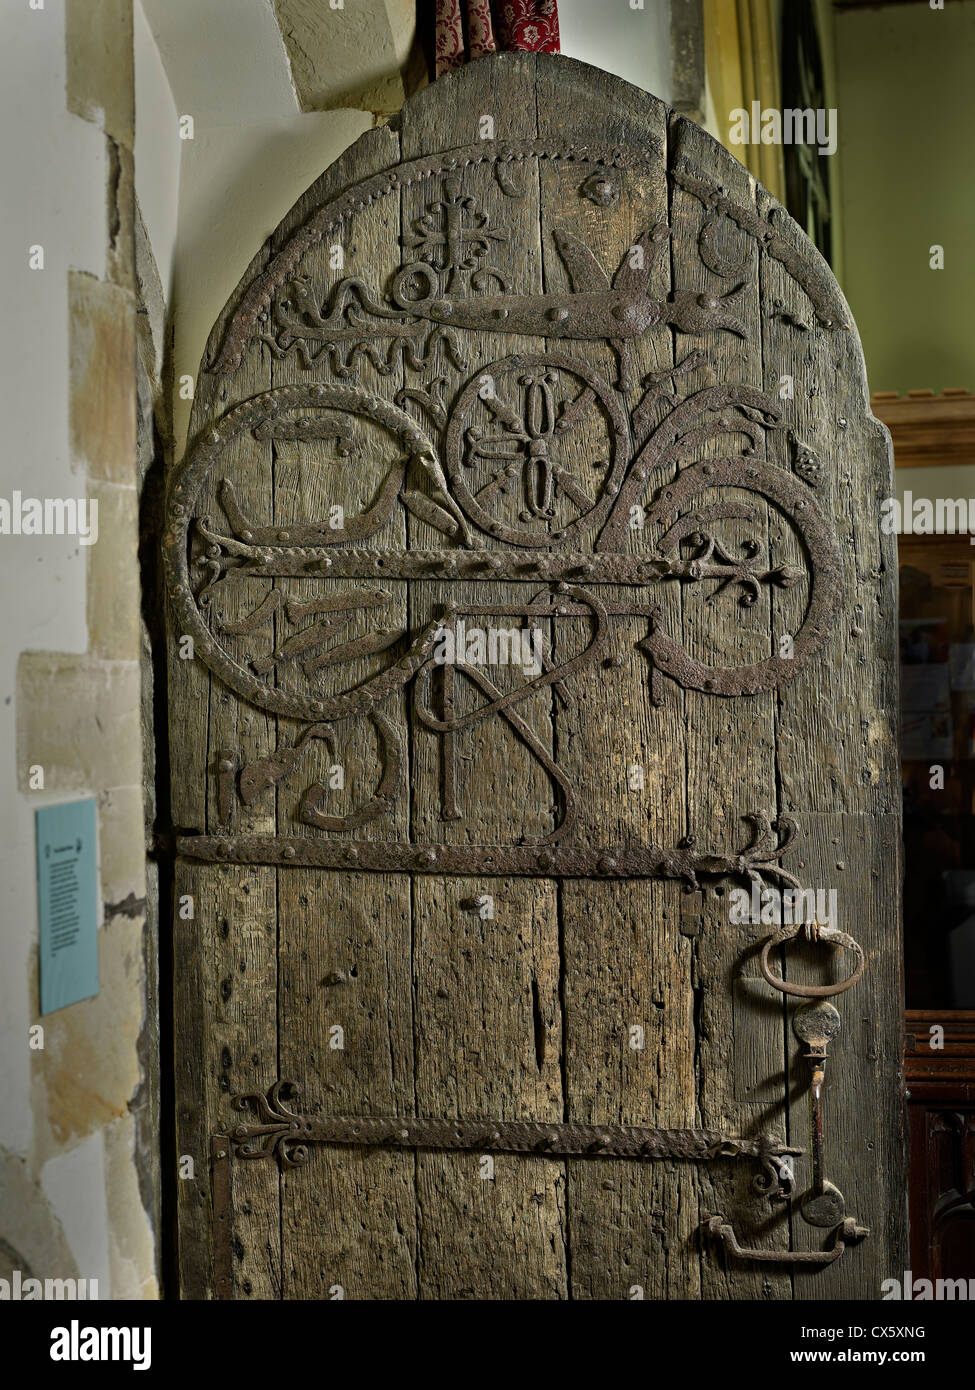 Staplehurst, Kent. All Saints Church south door - Stock Image